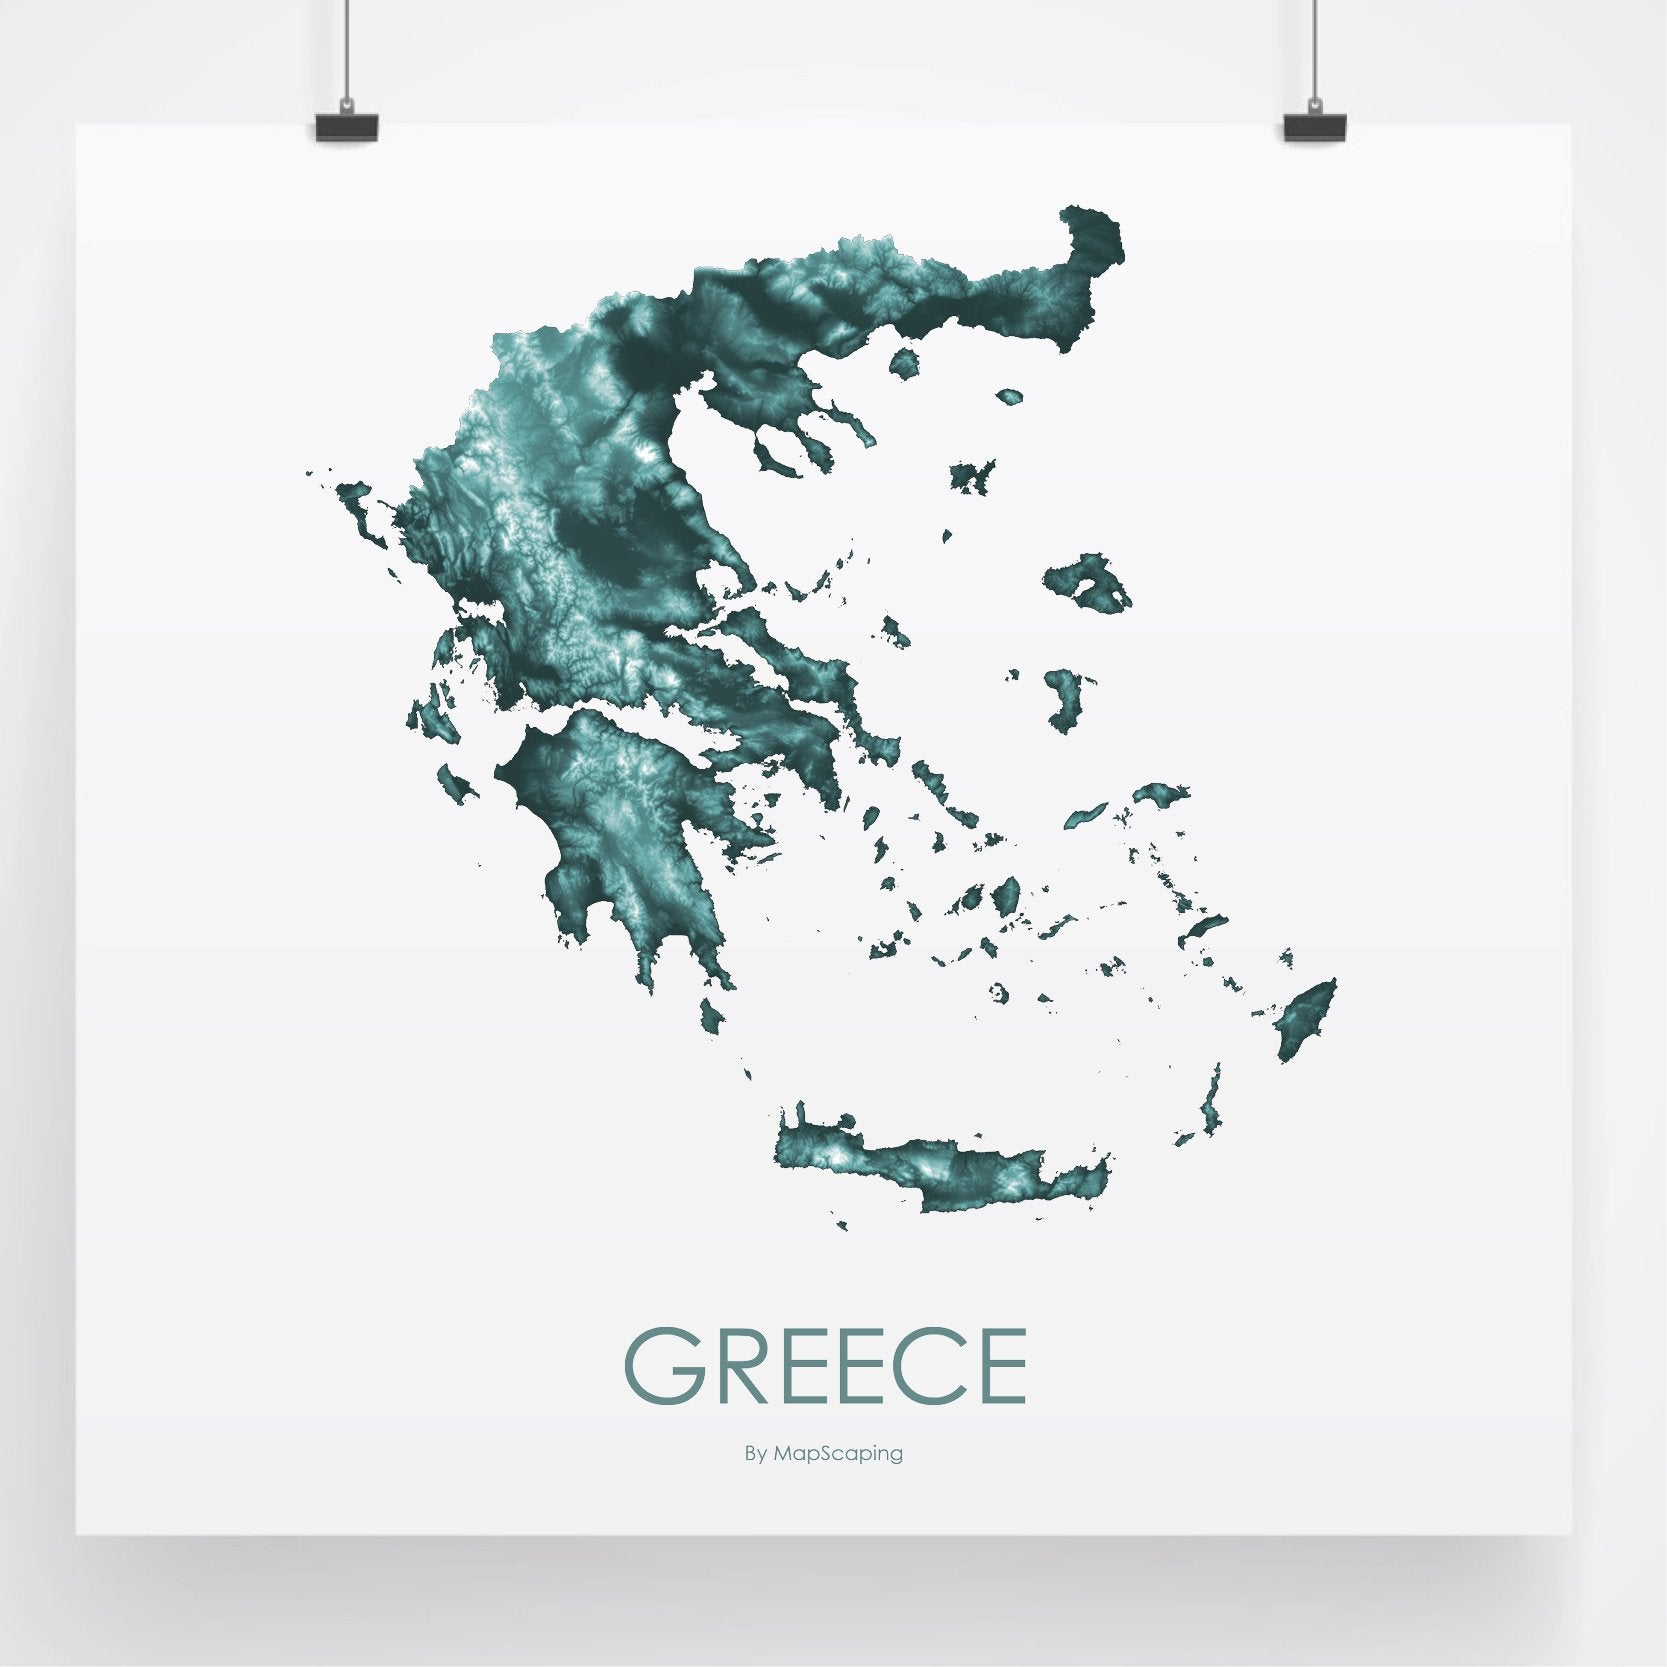 Greece topographic wall art map - MapScaping.com -Topographic map art